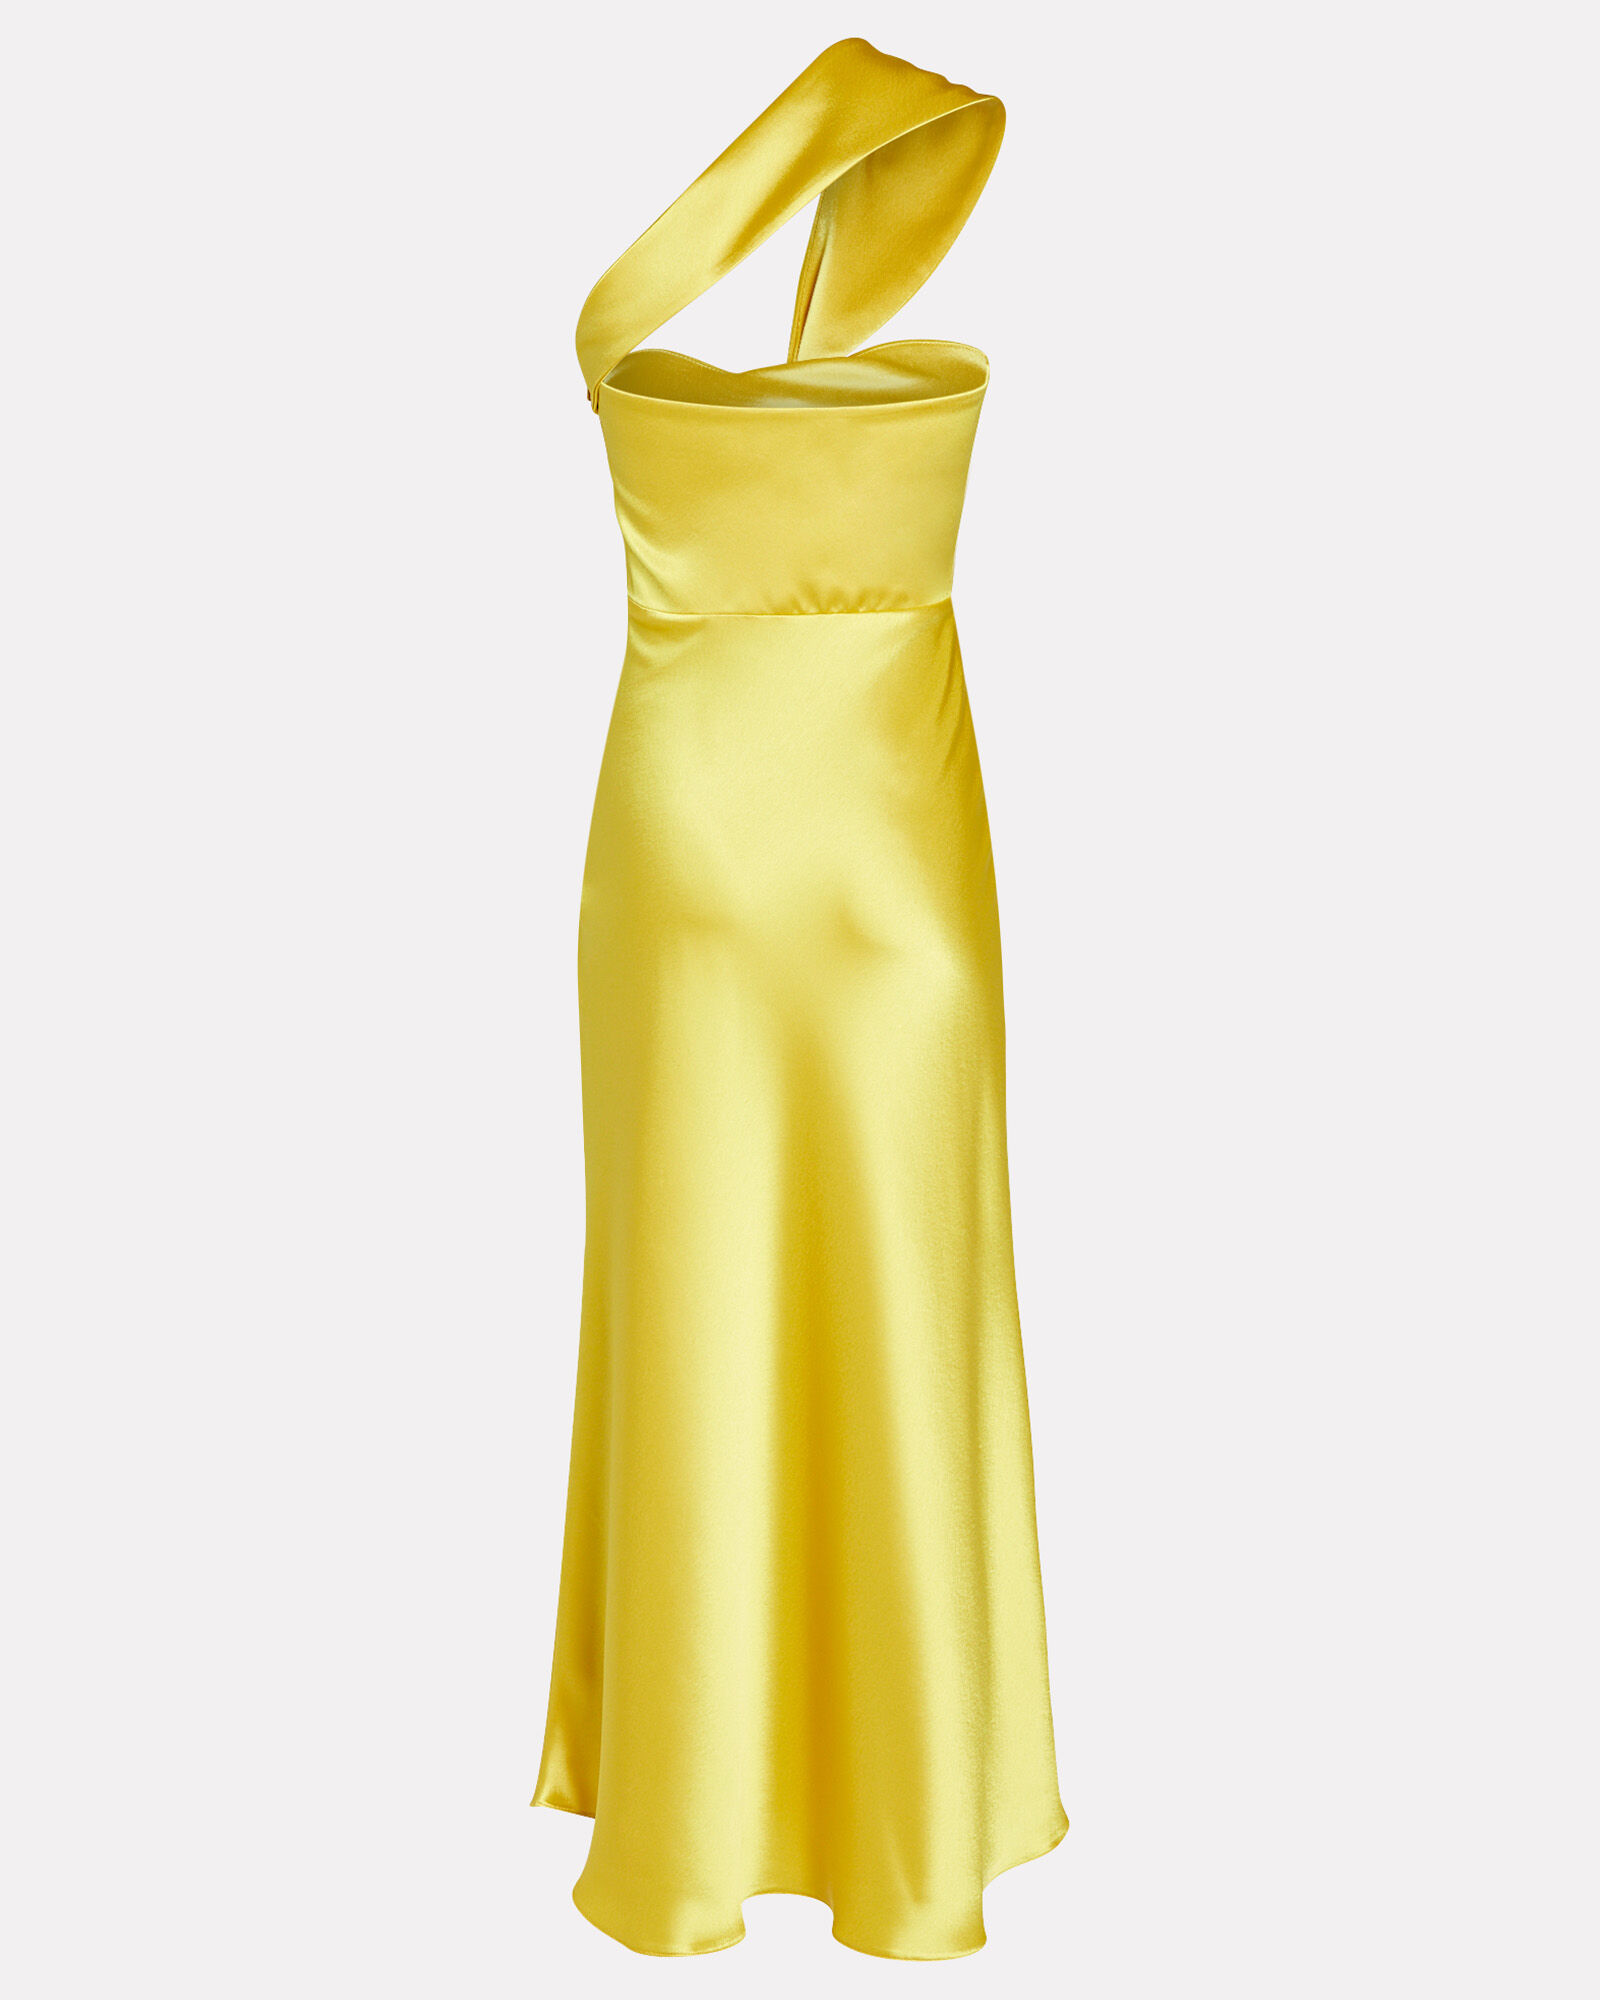 Tangier Twisted Midi Dress, YELLOW, hi-res